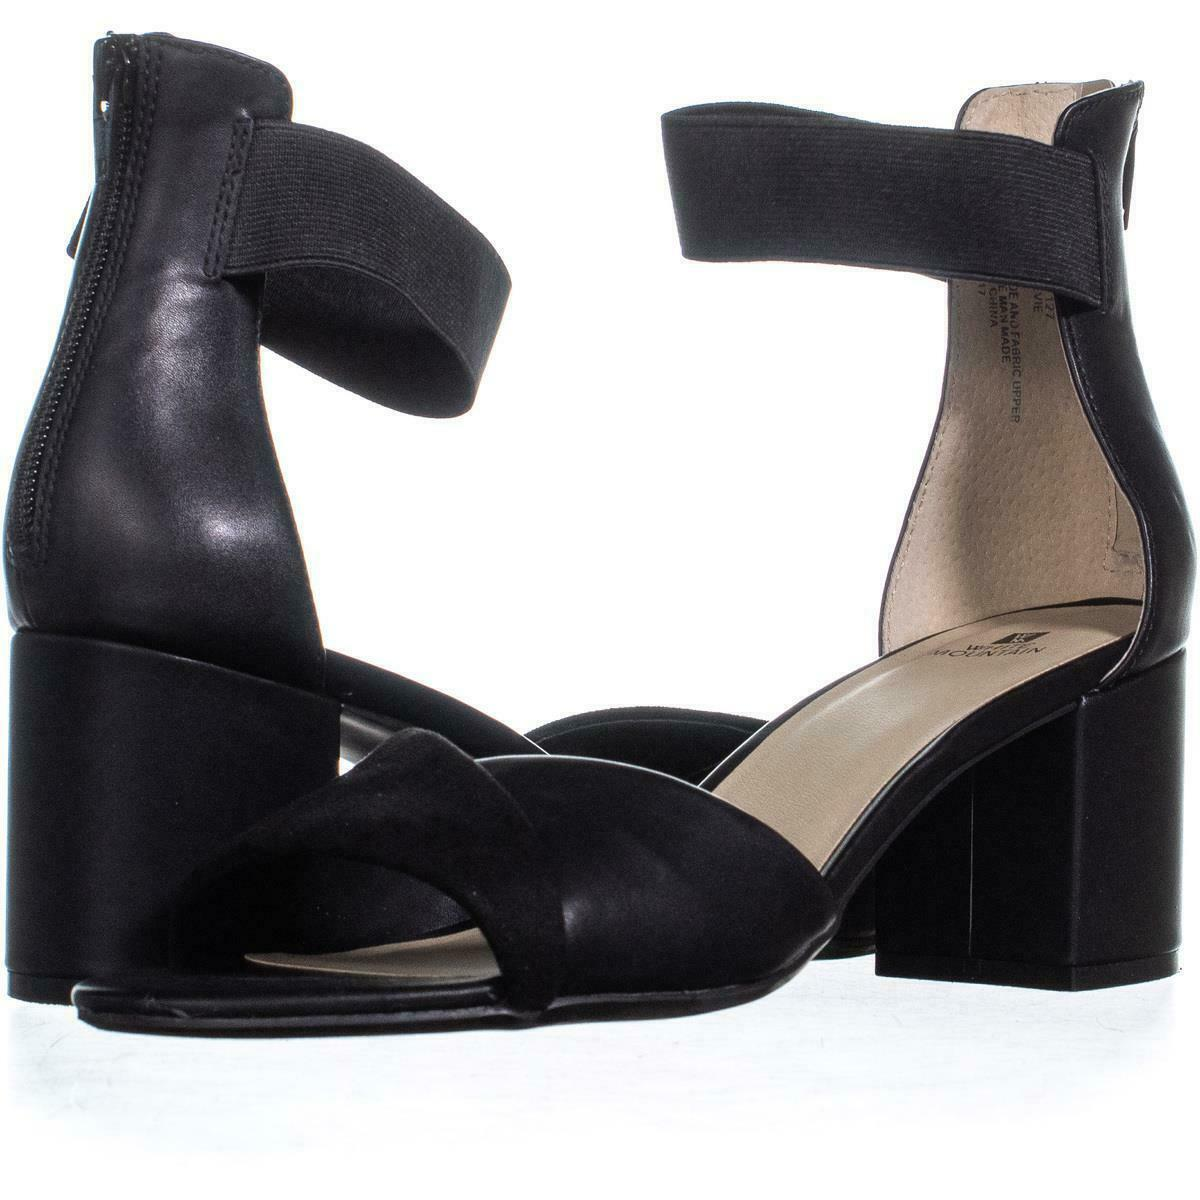 White Mountain Evie Criss Crossed Ankle Strap Sandals 736, Black, 10 US